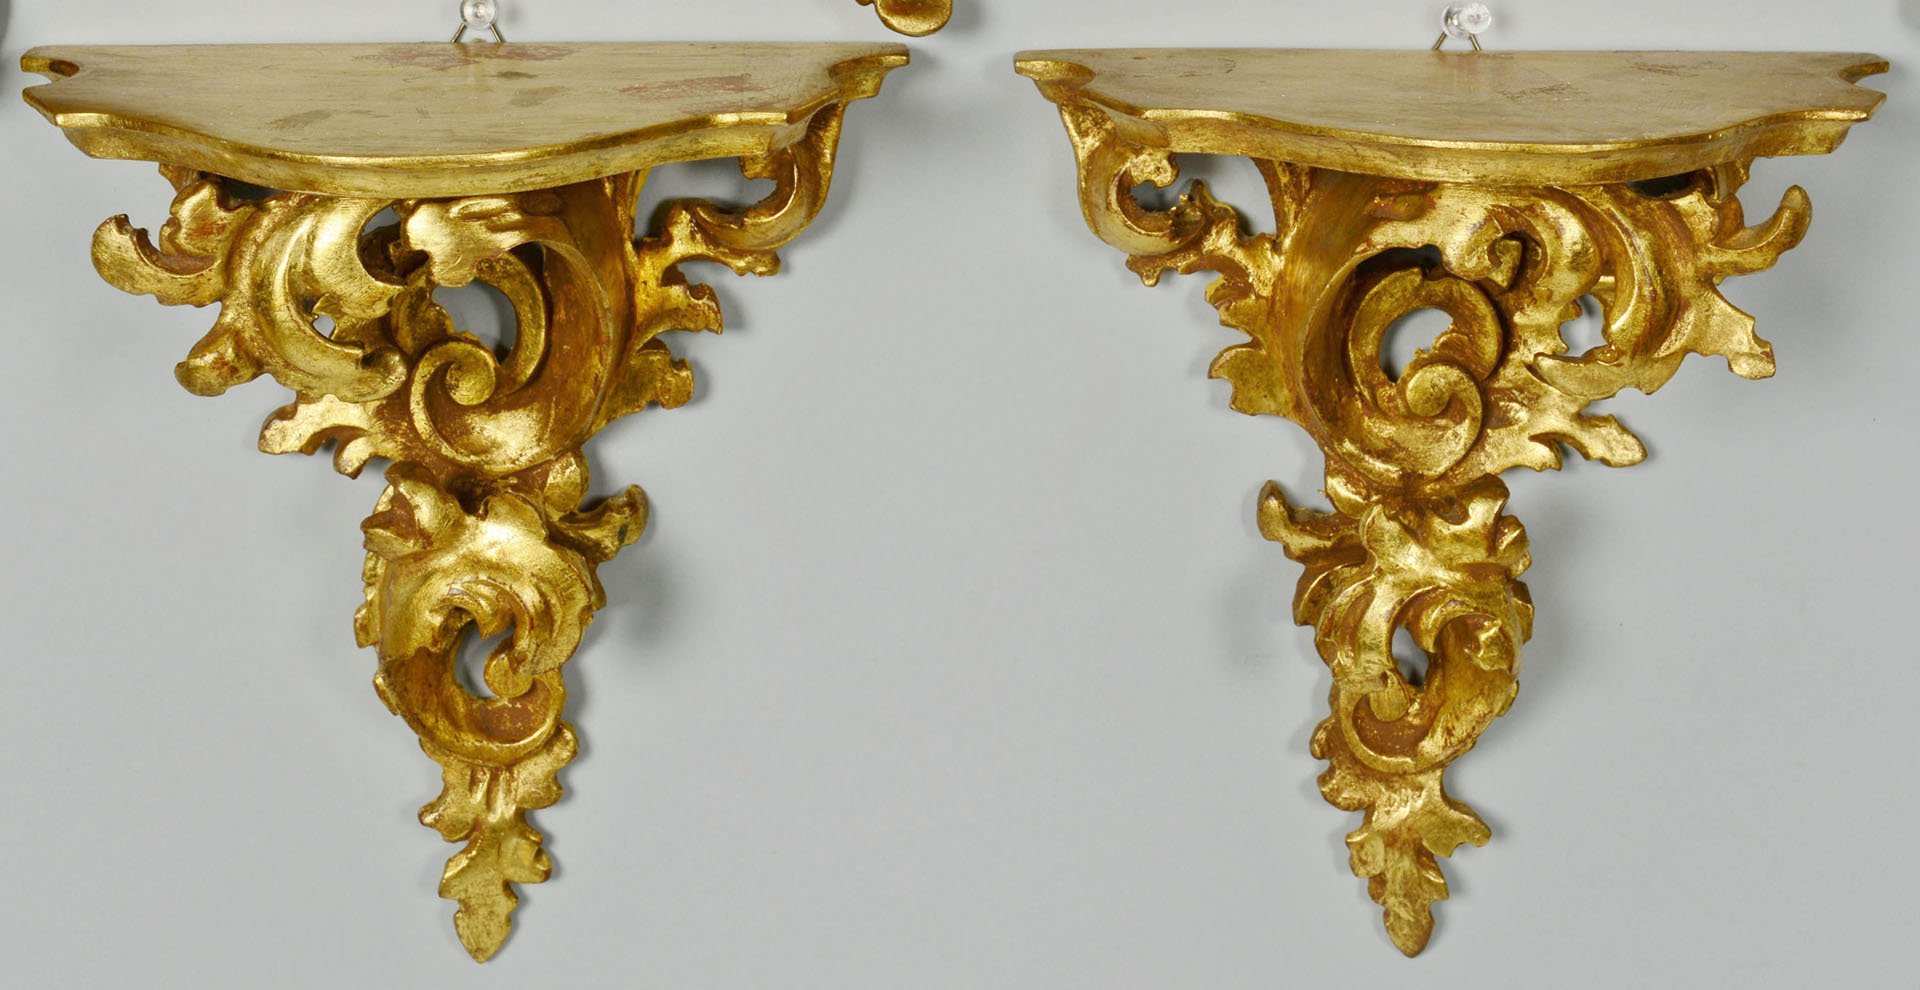 Grouping of 5 Italian Gilt Sconces